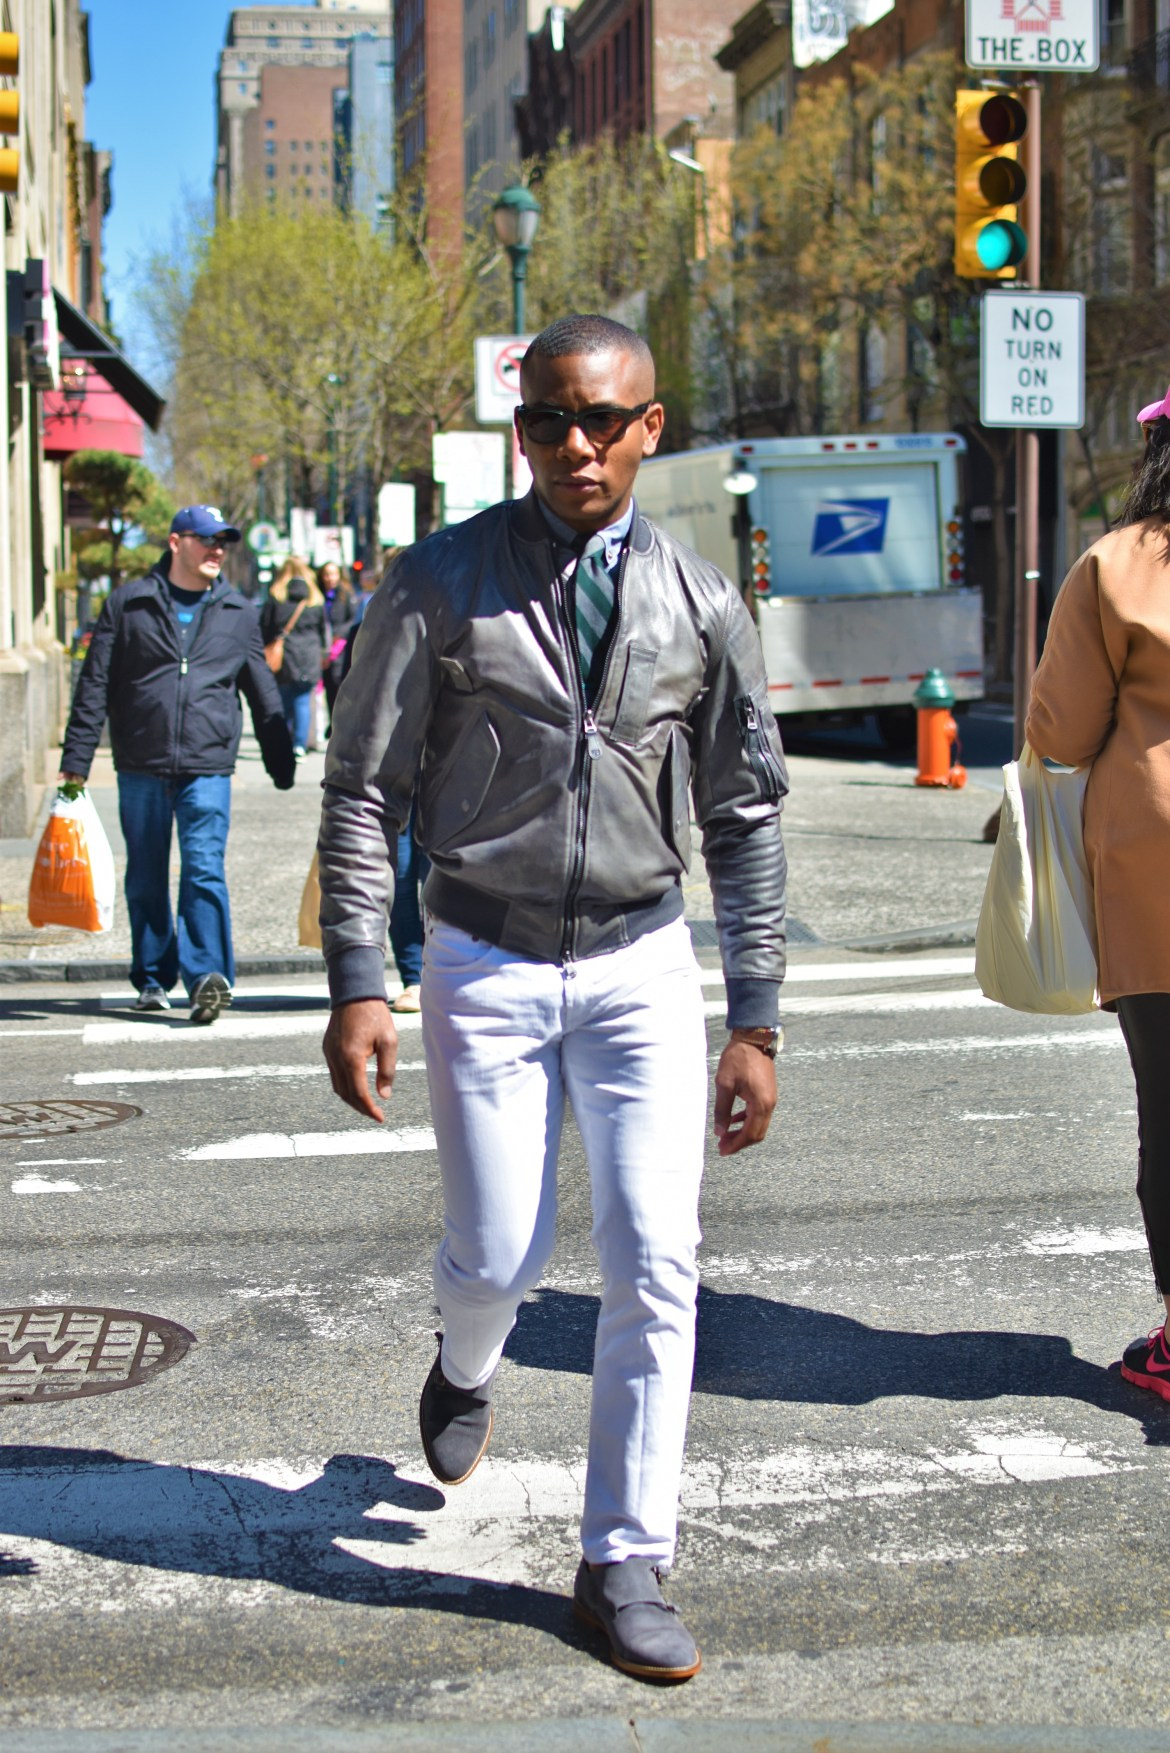 Sabir M. Peele in Grey Leather Aviator Flight Jacket from Cockpit USA